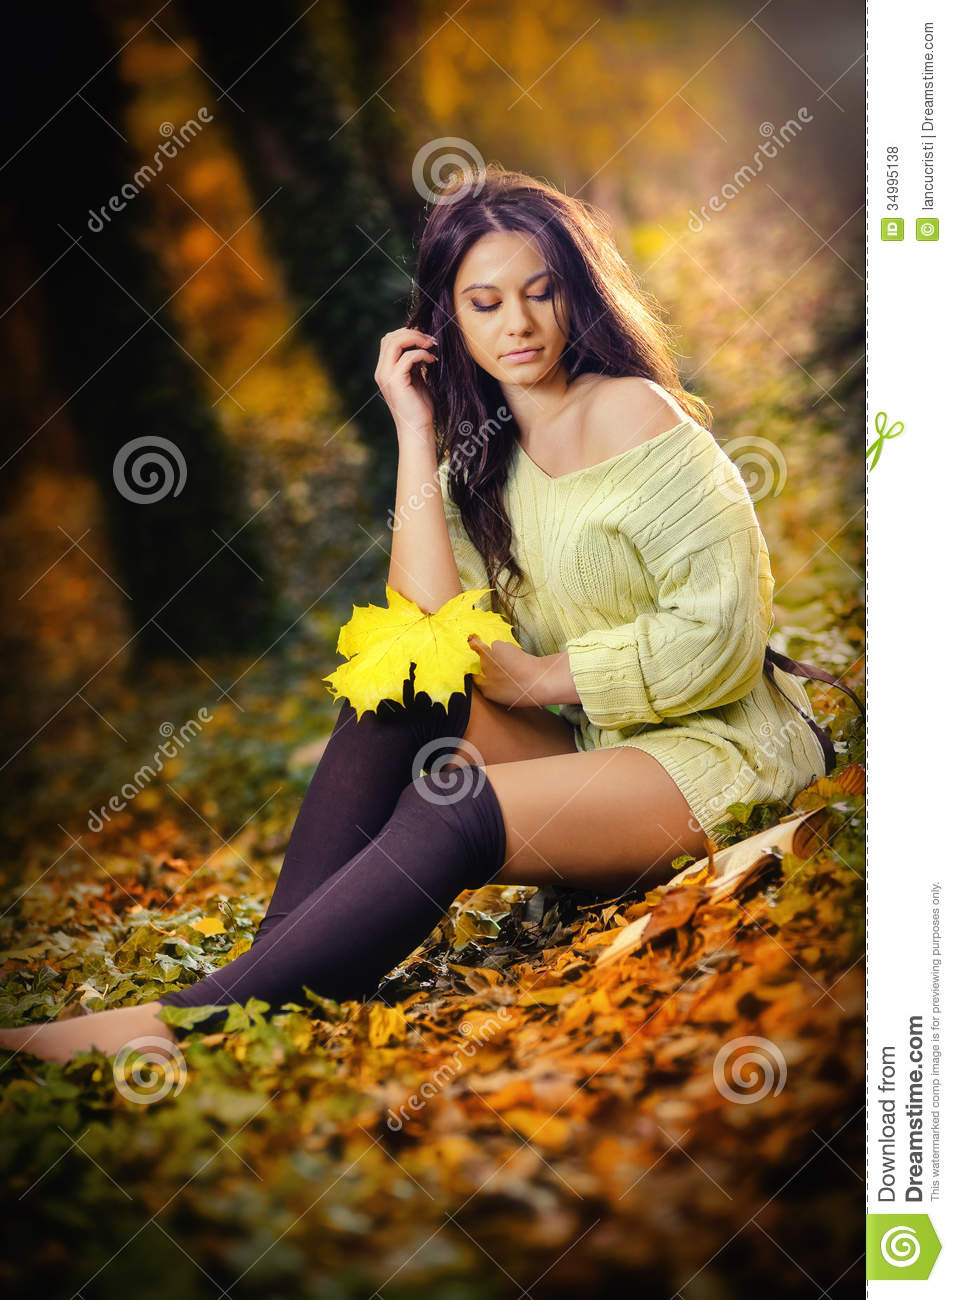 Beautiful Sensuality Teen Girl With Long Hair: Young Caucasian Sensual Woman In A Romantic Autumn Scenery